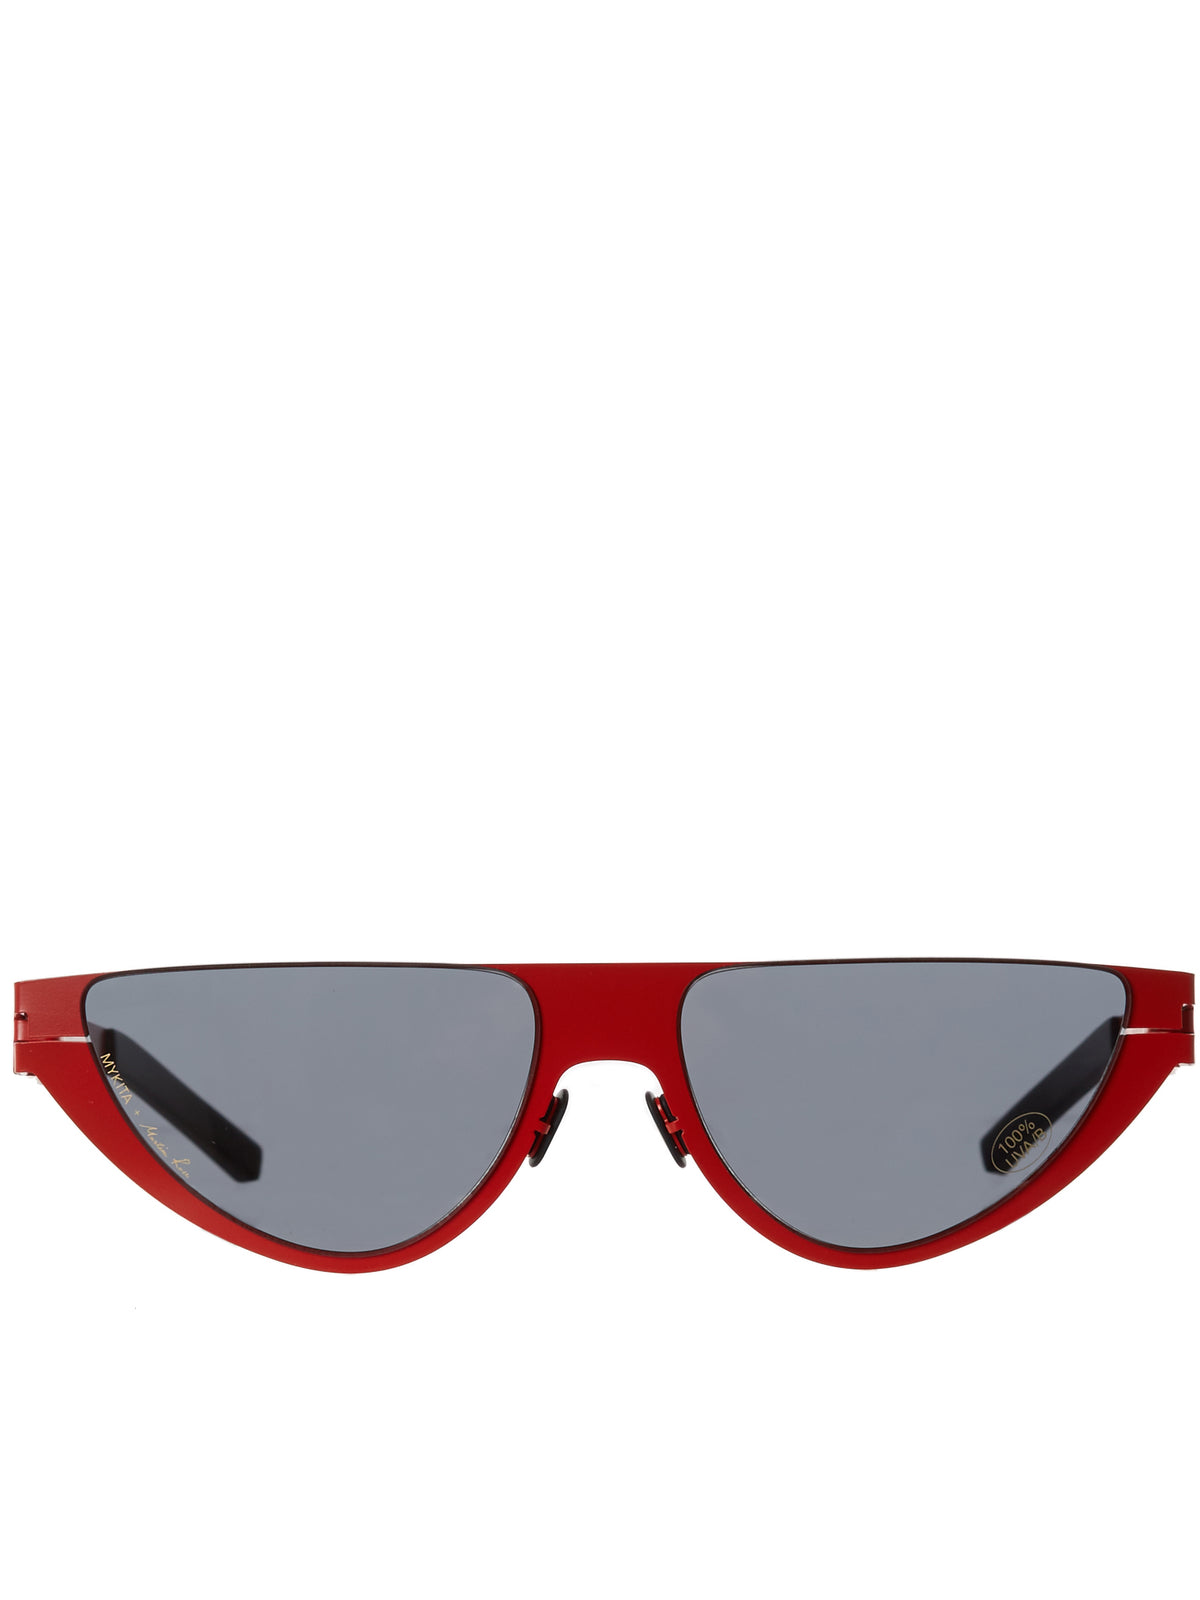 'Kitt' Browless Sunglasses (KITT-ANTIQUERED-DARKGREY)